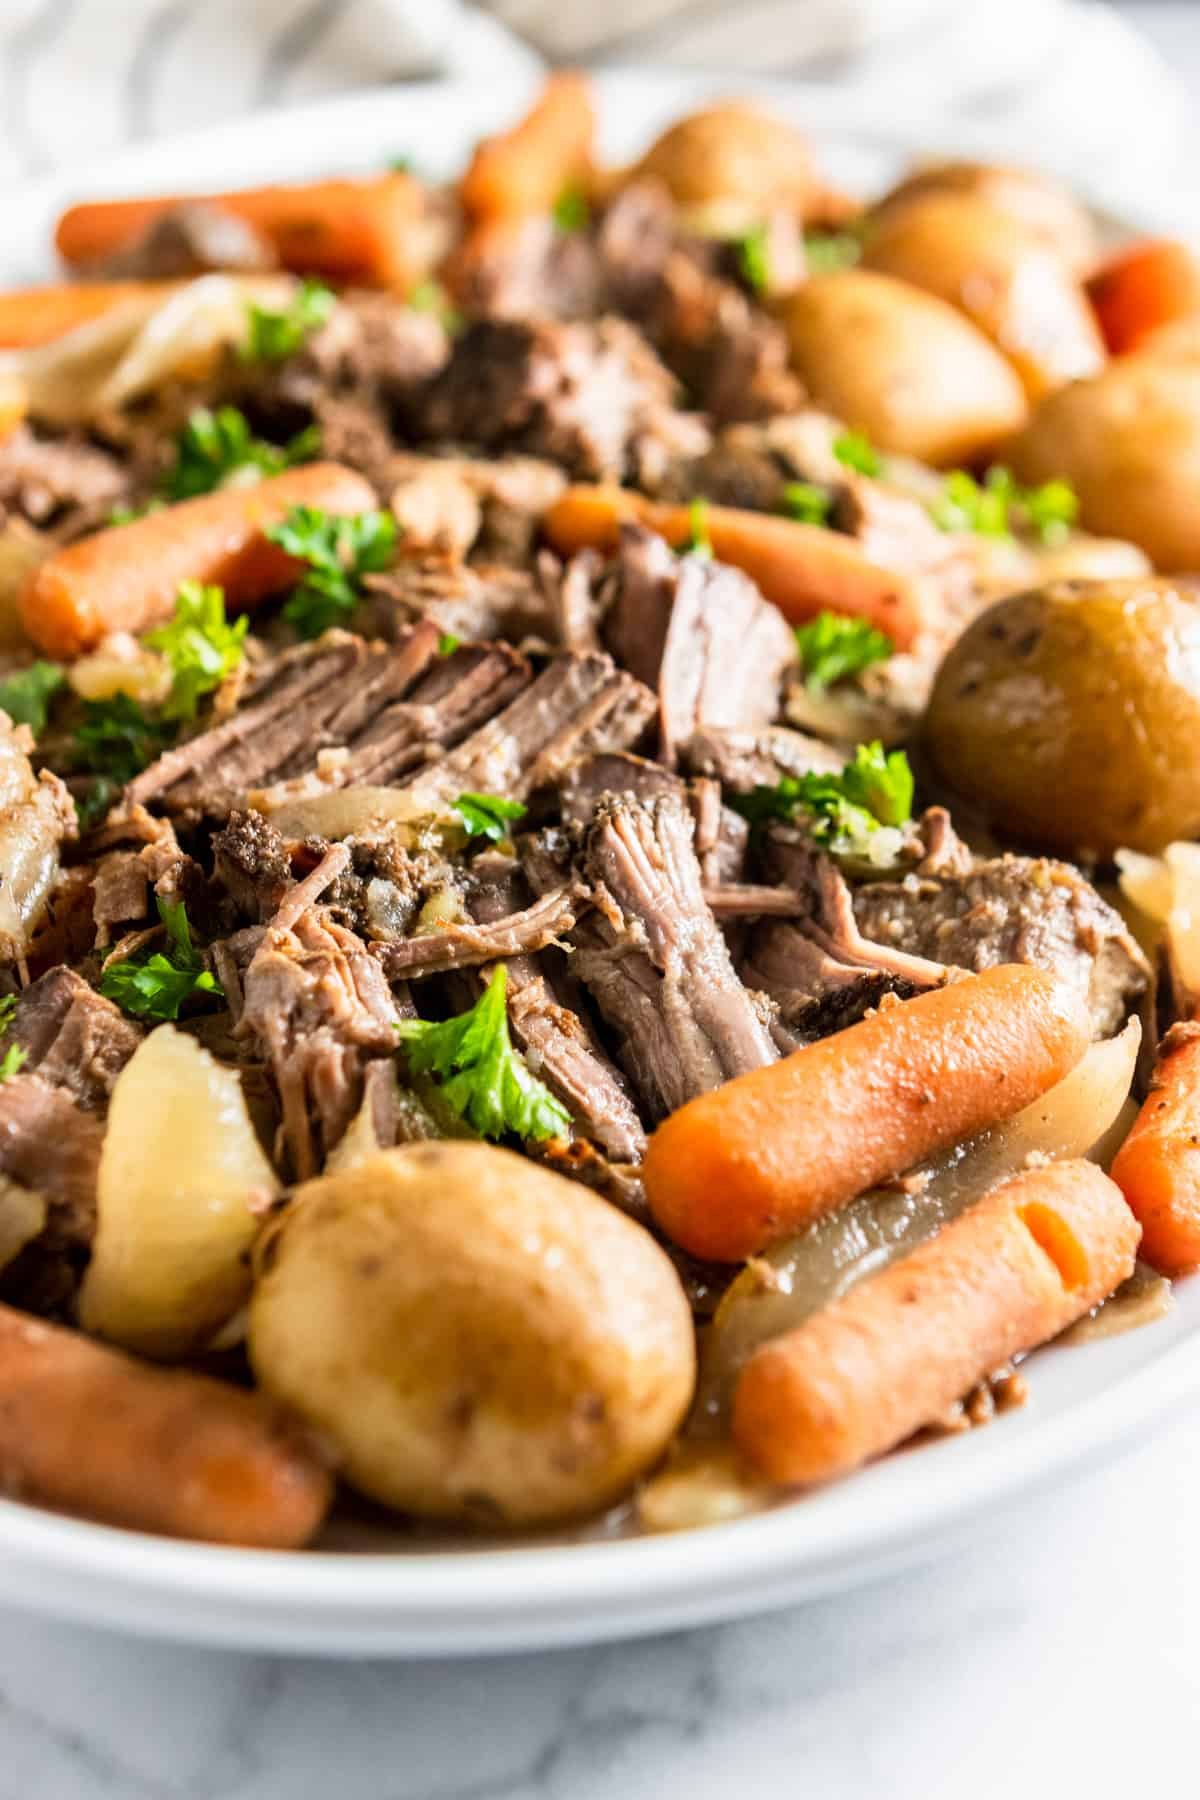 Slow Cooker Pot Roast with carrots, potatoes and onions on serving platter.